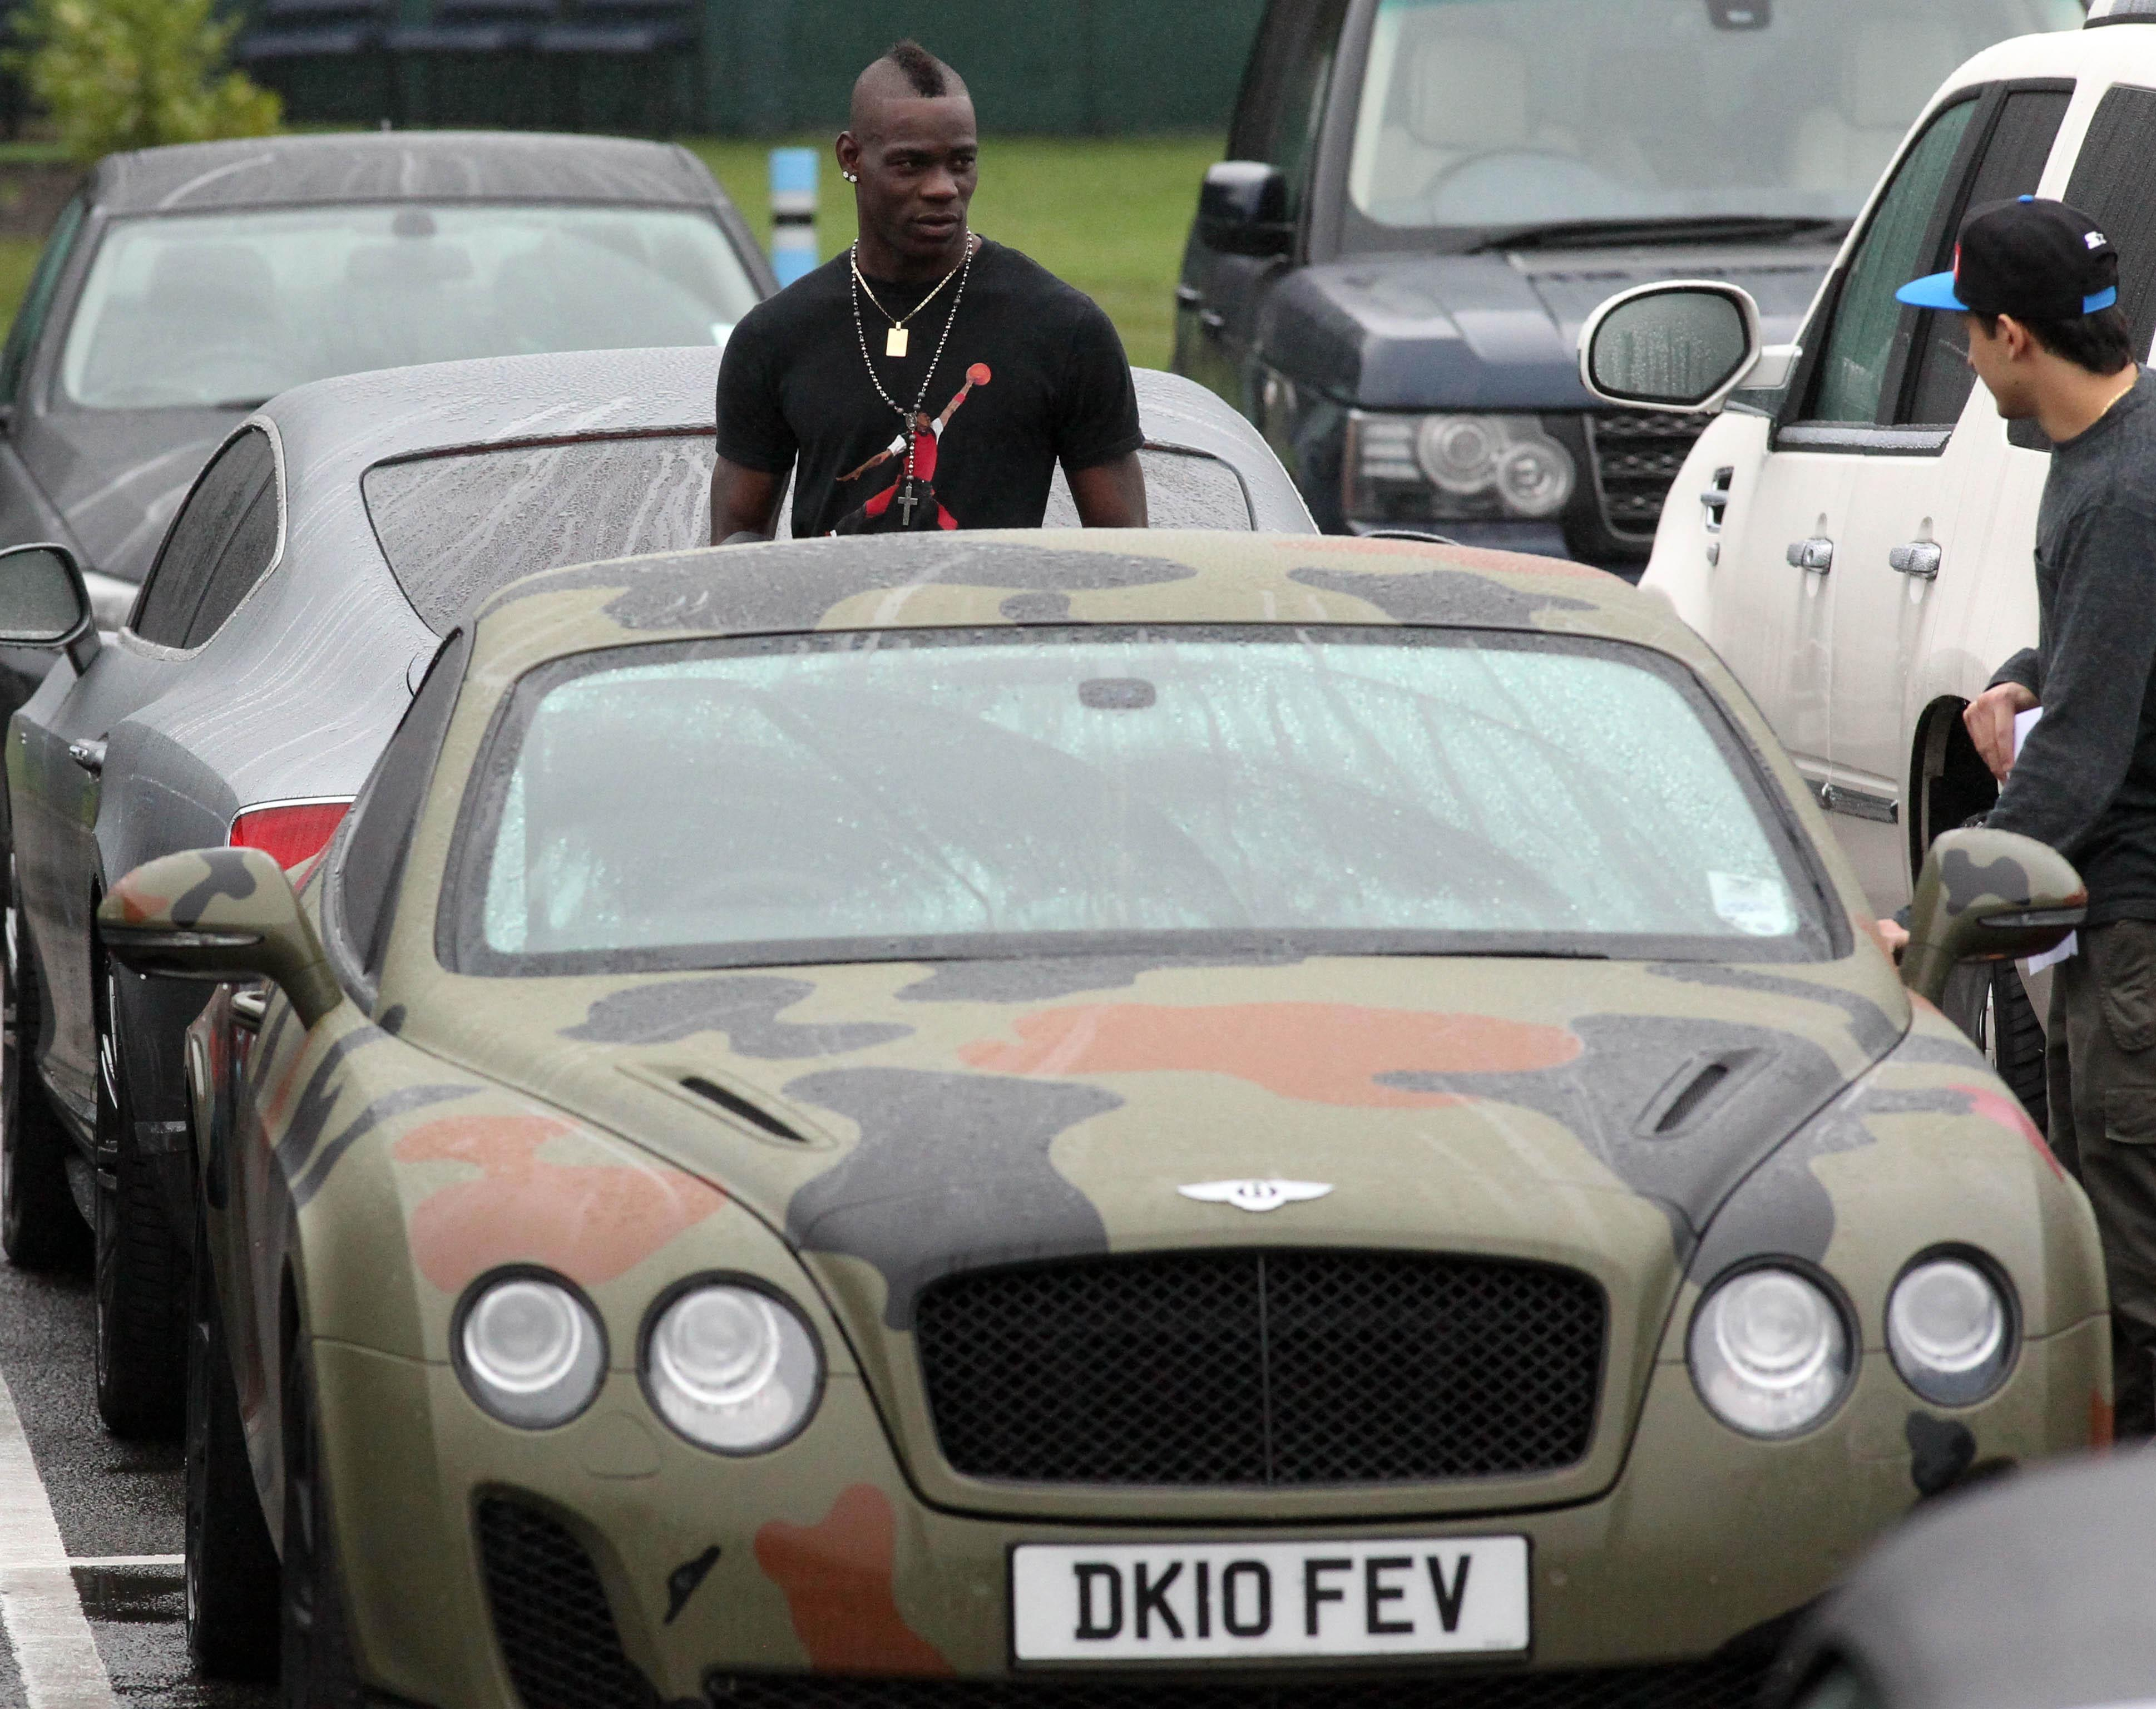 Mario Balotelli's Bentley was a little too camouflaged for Crouch